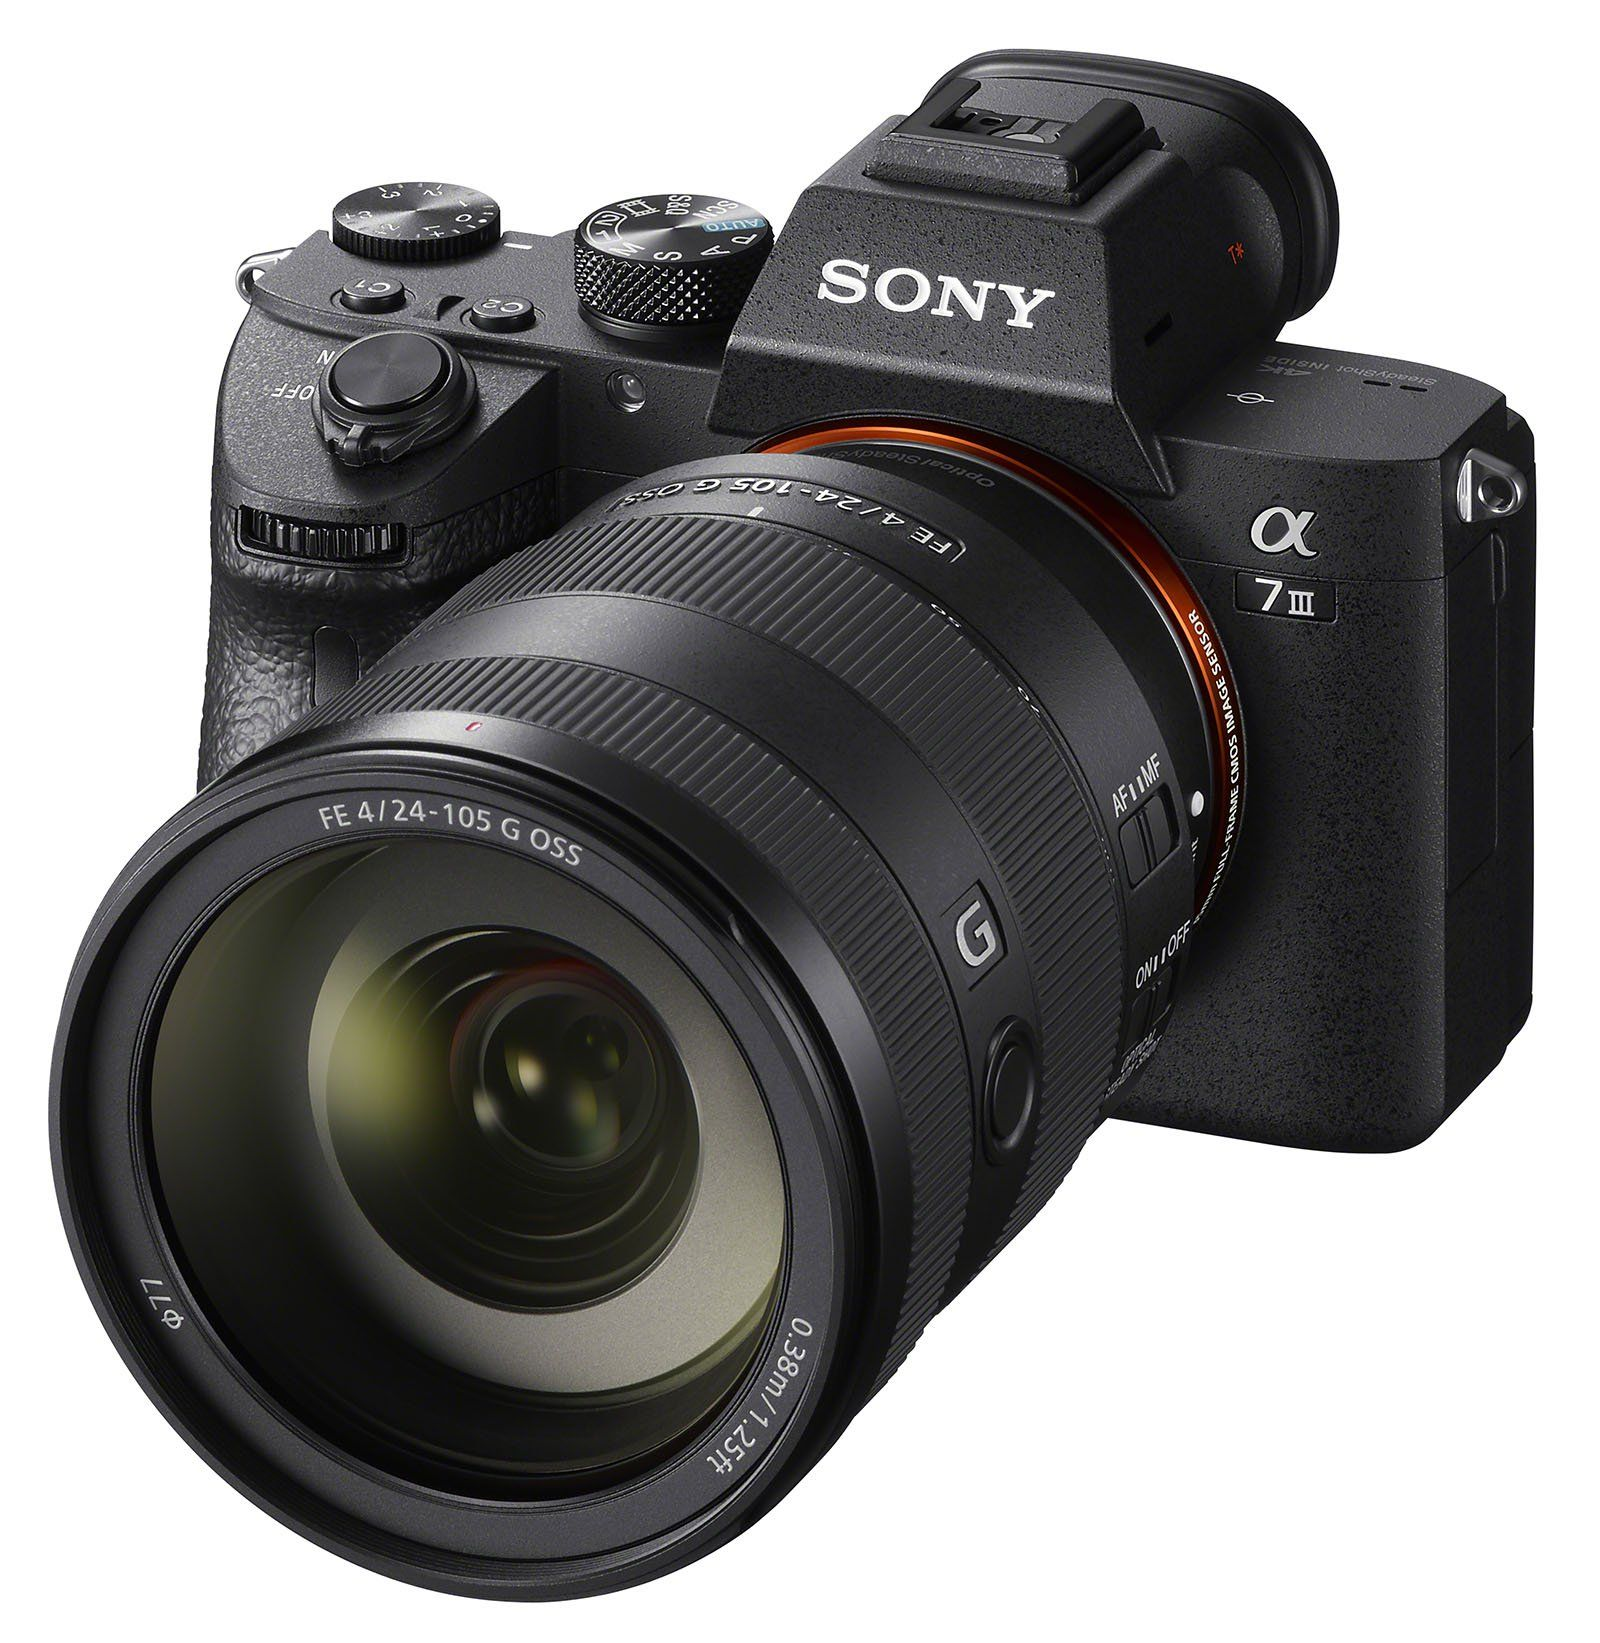 Sony A7 Iii A Feature Filled 24mp And 4k Full Frame Mirrorless For 1 999 Camera Gear Sony Camera Mirrorless Camera